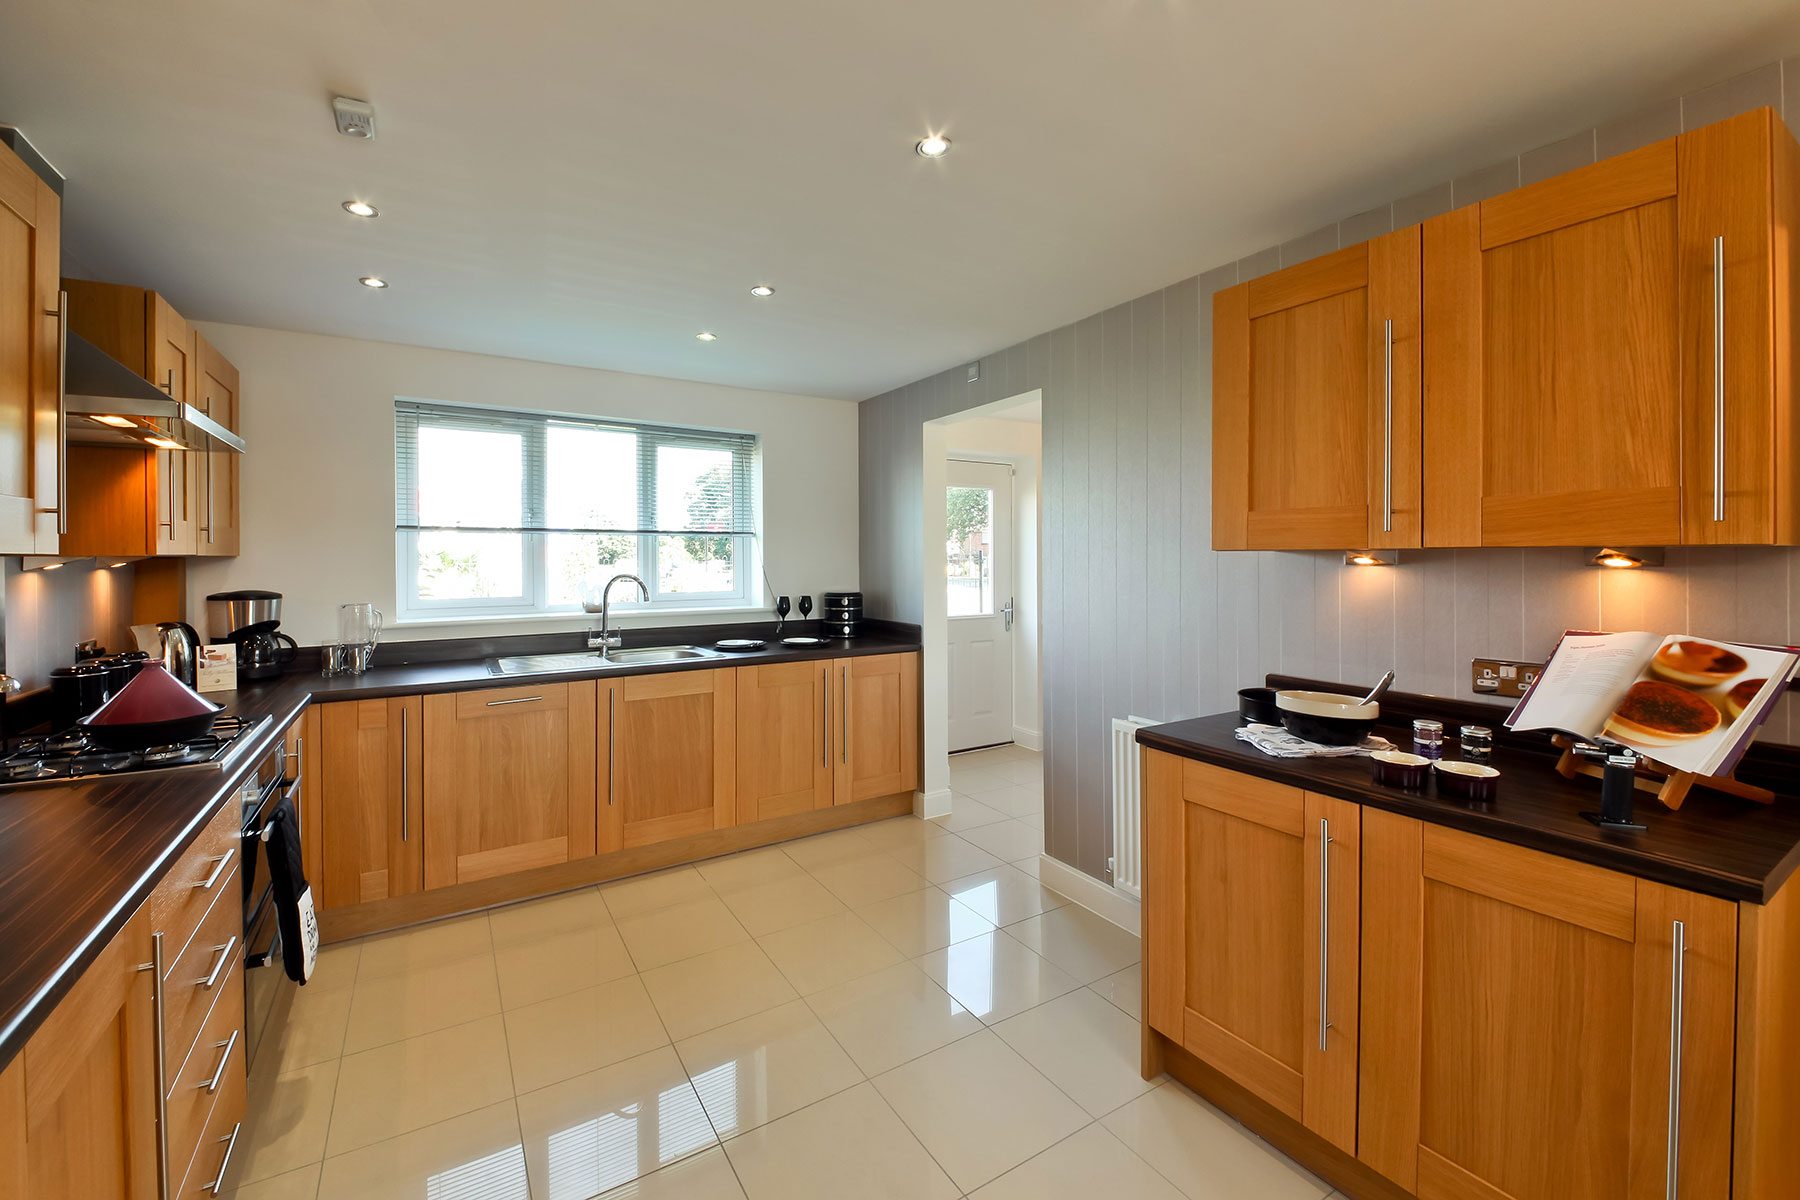 Taylor Wimpey - typical kitchen